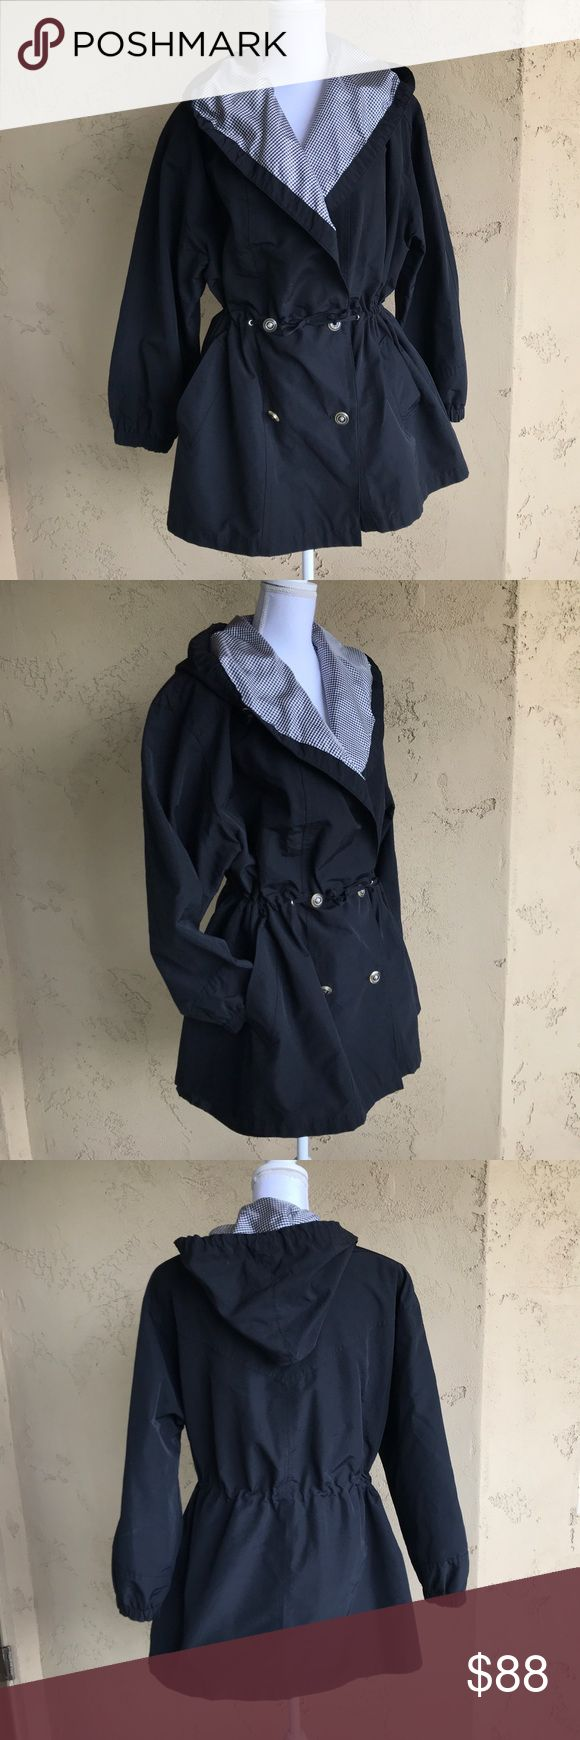 Gallery black rain coat trench coat sz M/L Gently used in excellent condition Gallery black rain coat trench coat sz M/L.  No size tag but would fit a medium/large.  Cinched waist. Buttons towards bottom.  Oversized/slouchy fit.    Measurements (inches):   Armpit to armpit: 26 Length: 31 Waist: 23 (un-cinched)  Sleeve: 22 in Shoulder: 21.5 Gallery Jackets & Coats Trench Coats